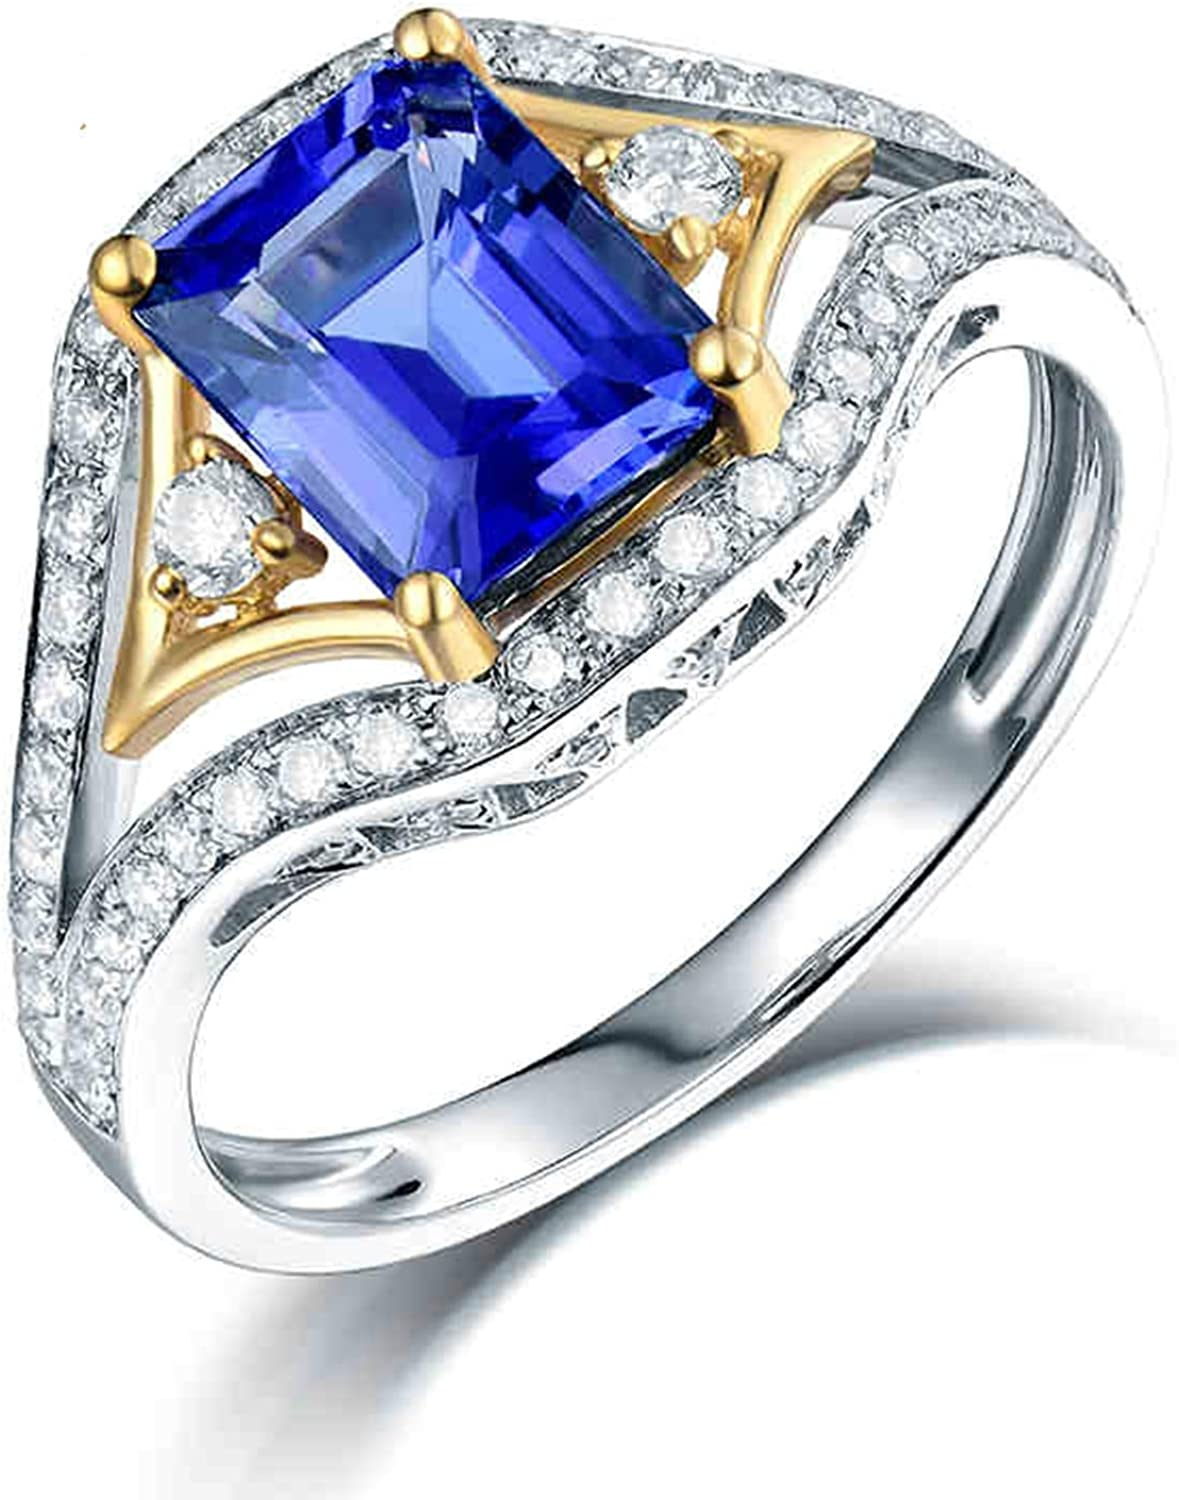 AMDXD White Gold Max 67% OFF Rings for Ring Outlet SALE Wife 1.46 Anniversary Women